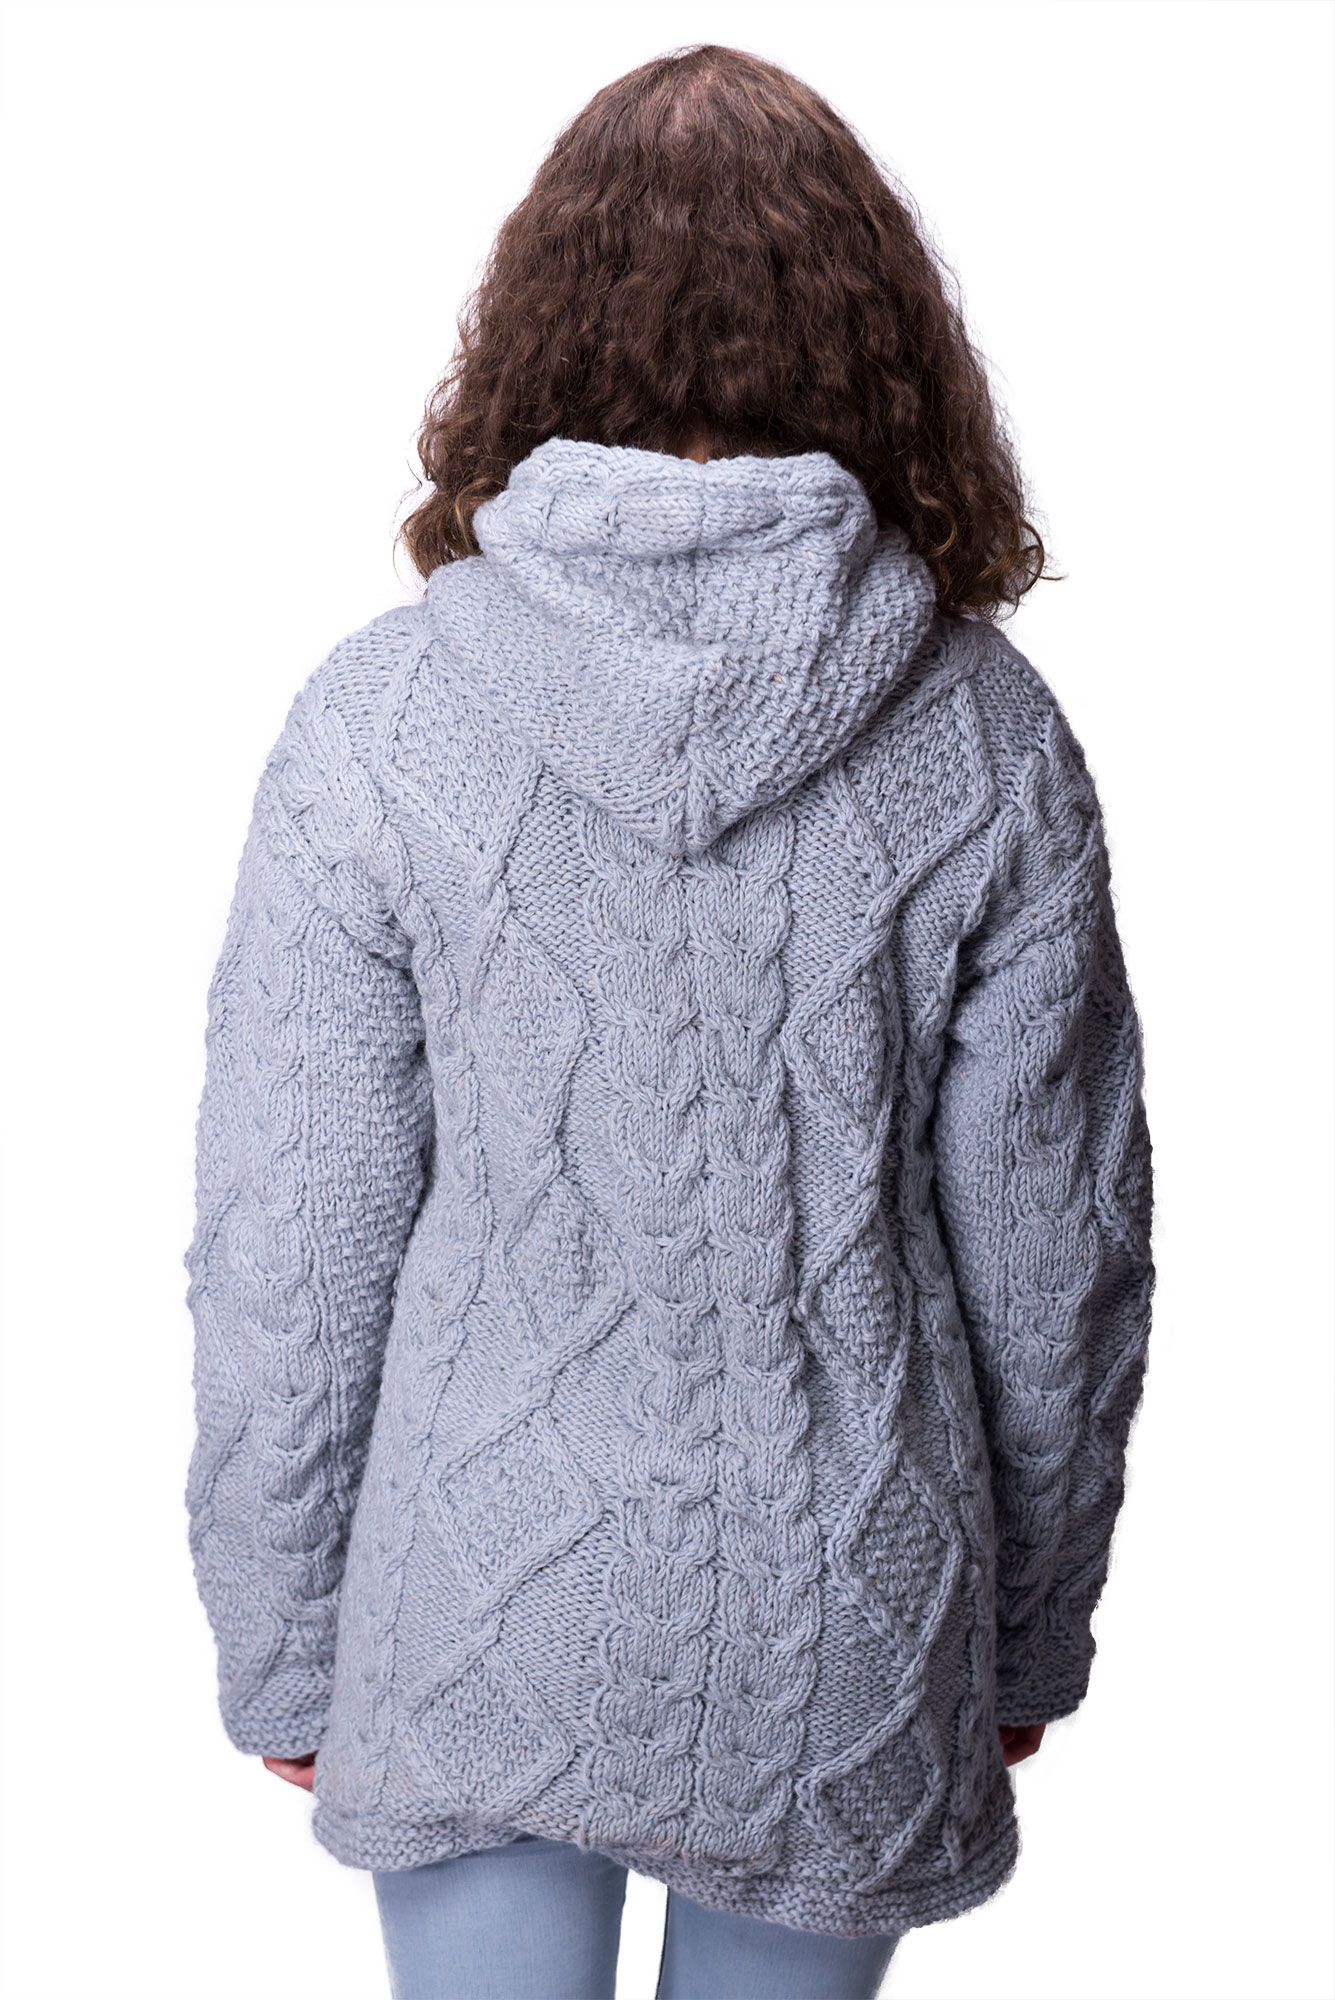 Wool Cable Knit Himalayan Mountain Jacket – Long Length Baby Blue